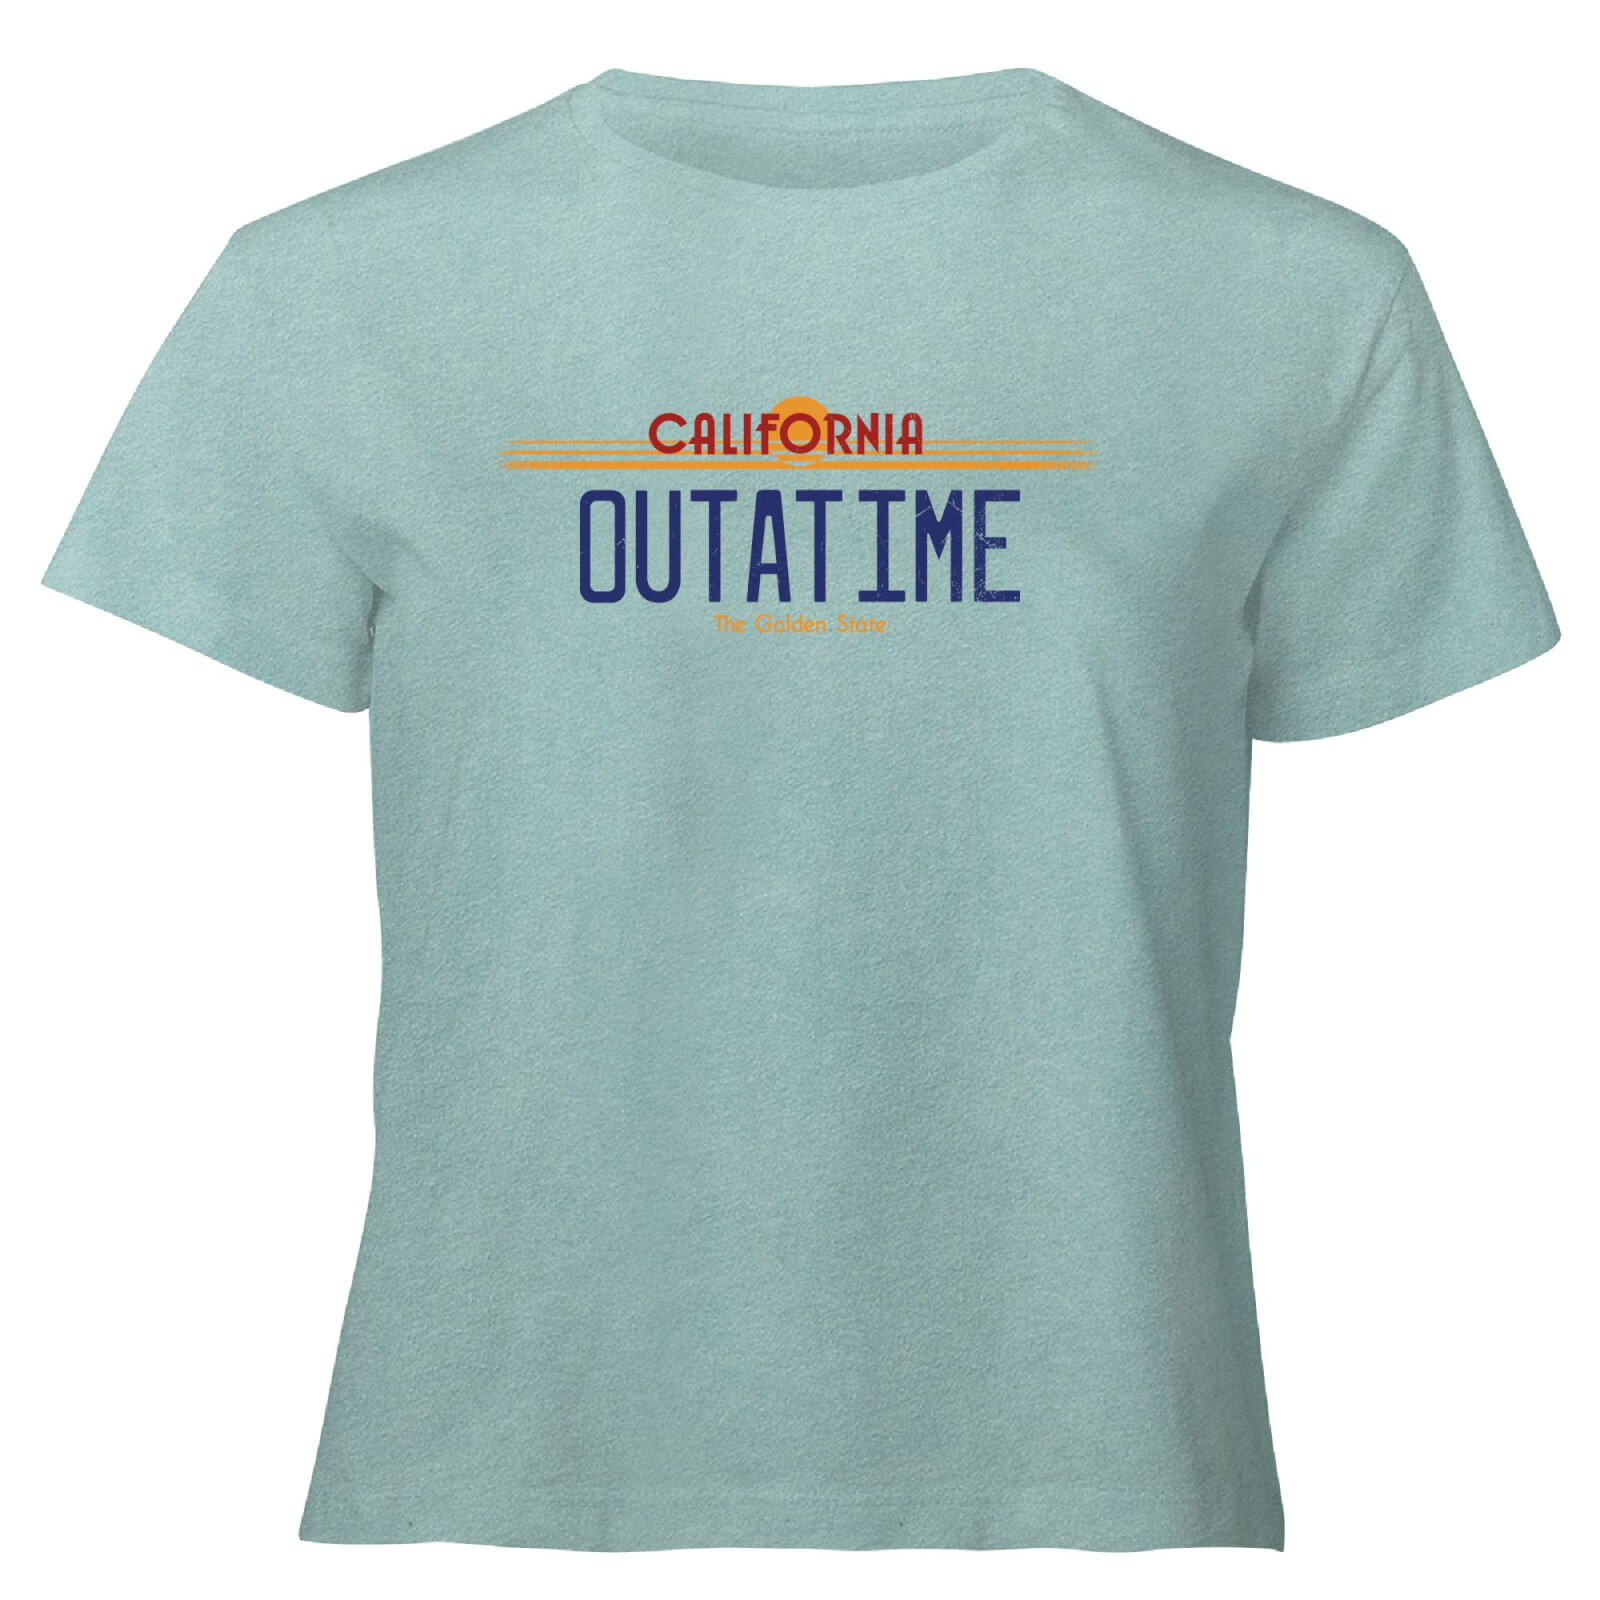 Back To The Future Outatime Plate - Women's Cropped T-Shirt - Mint Acid Wash - XS - Mint Acid Wash